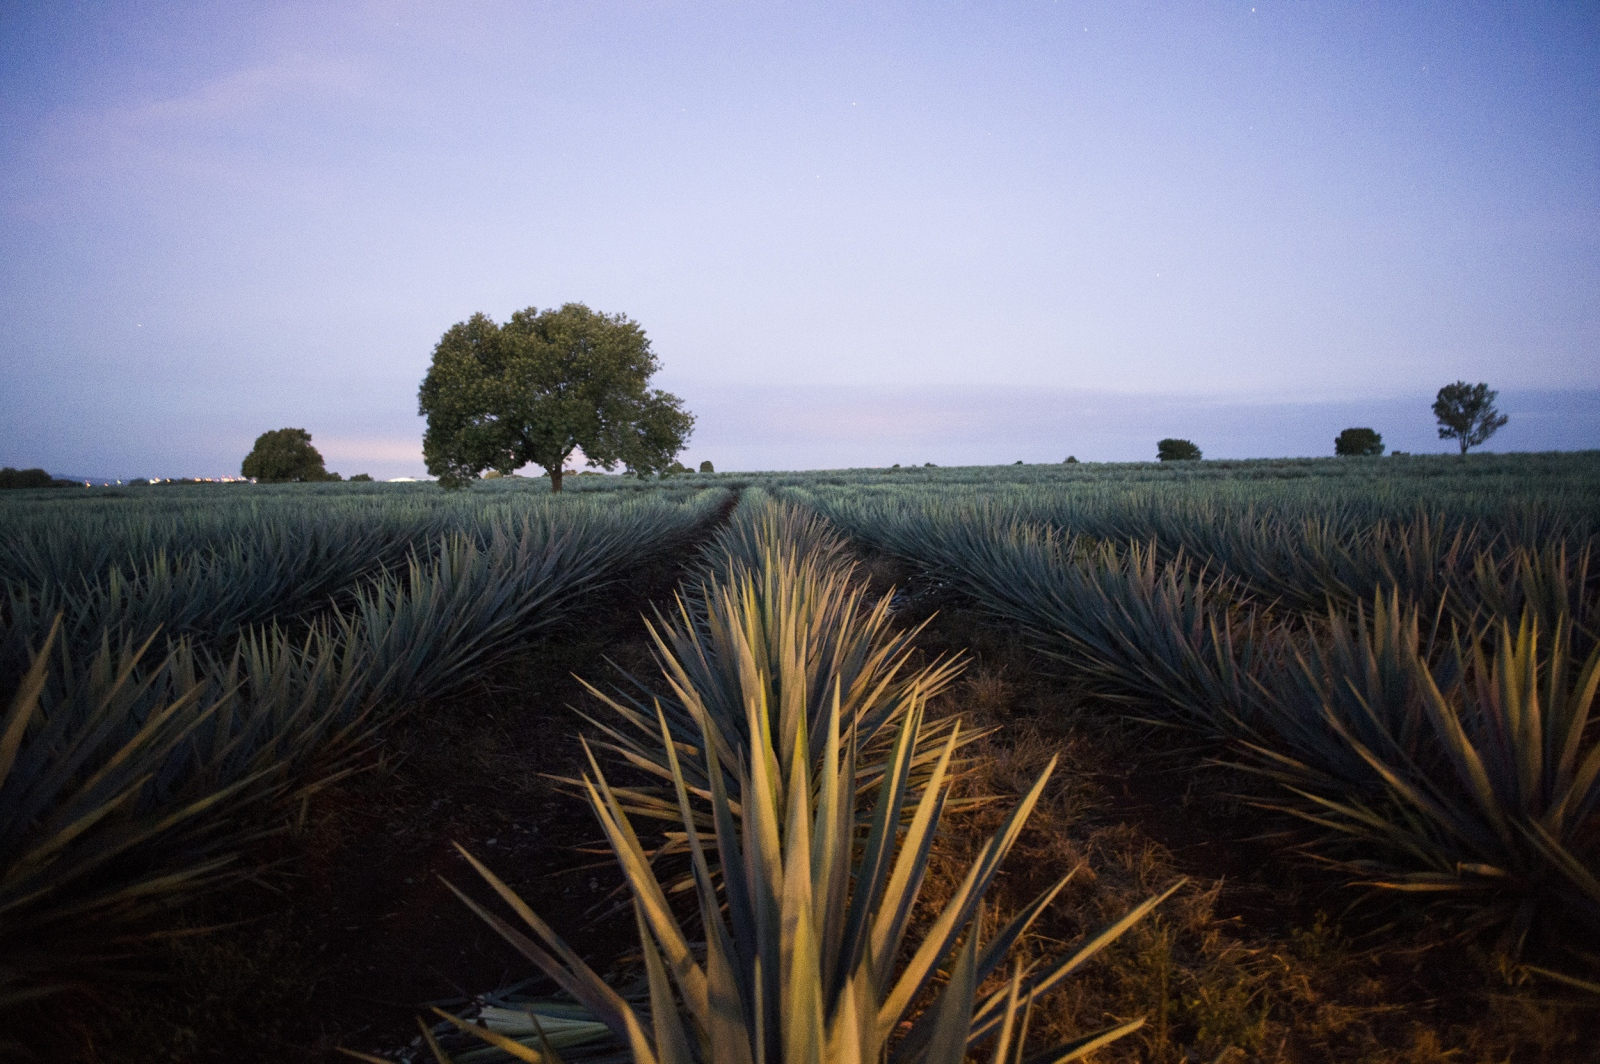 Sun rises over an agave field.